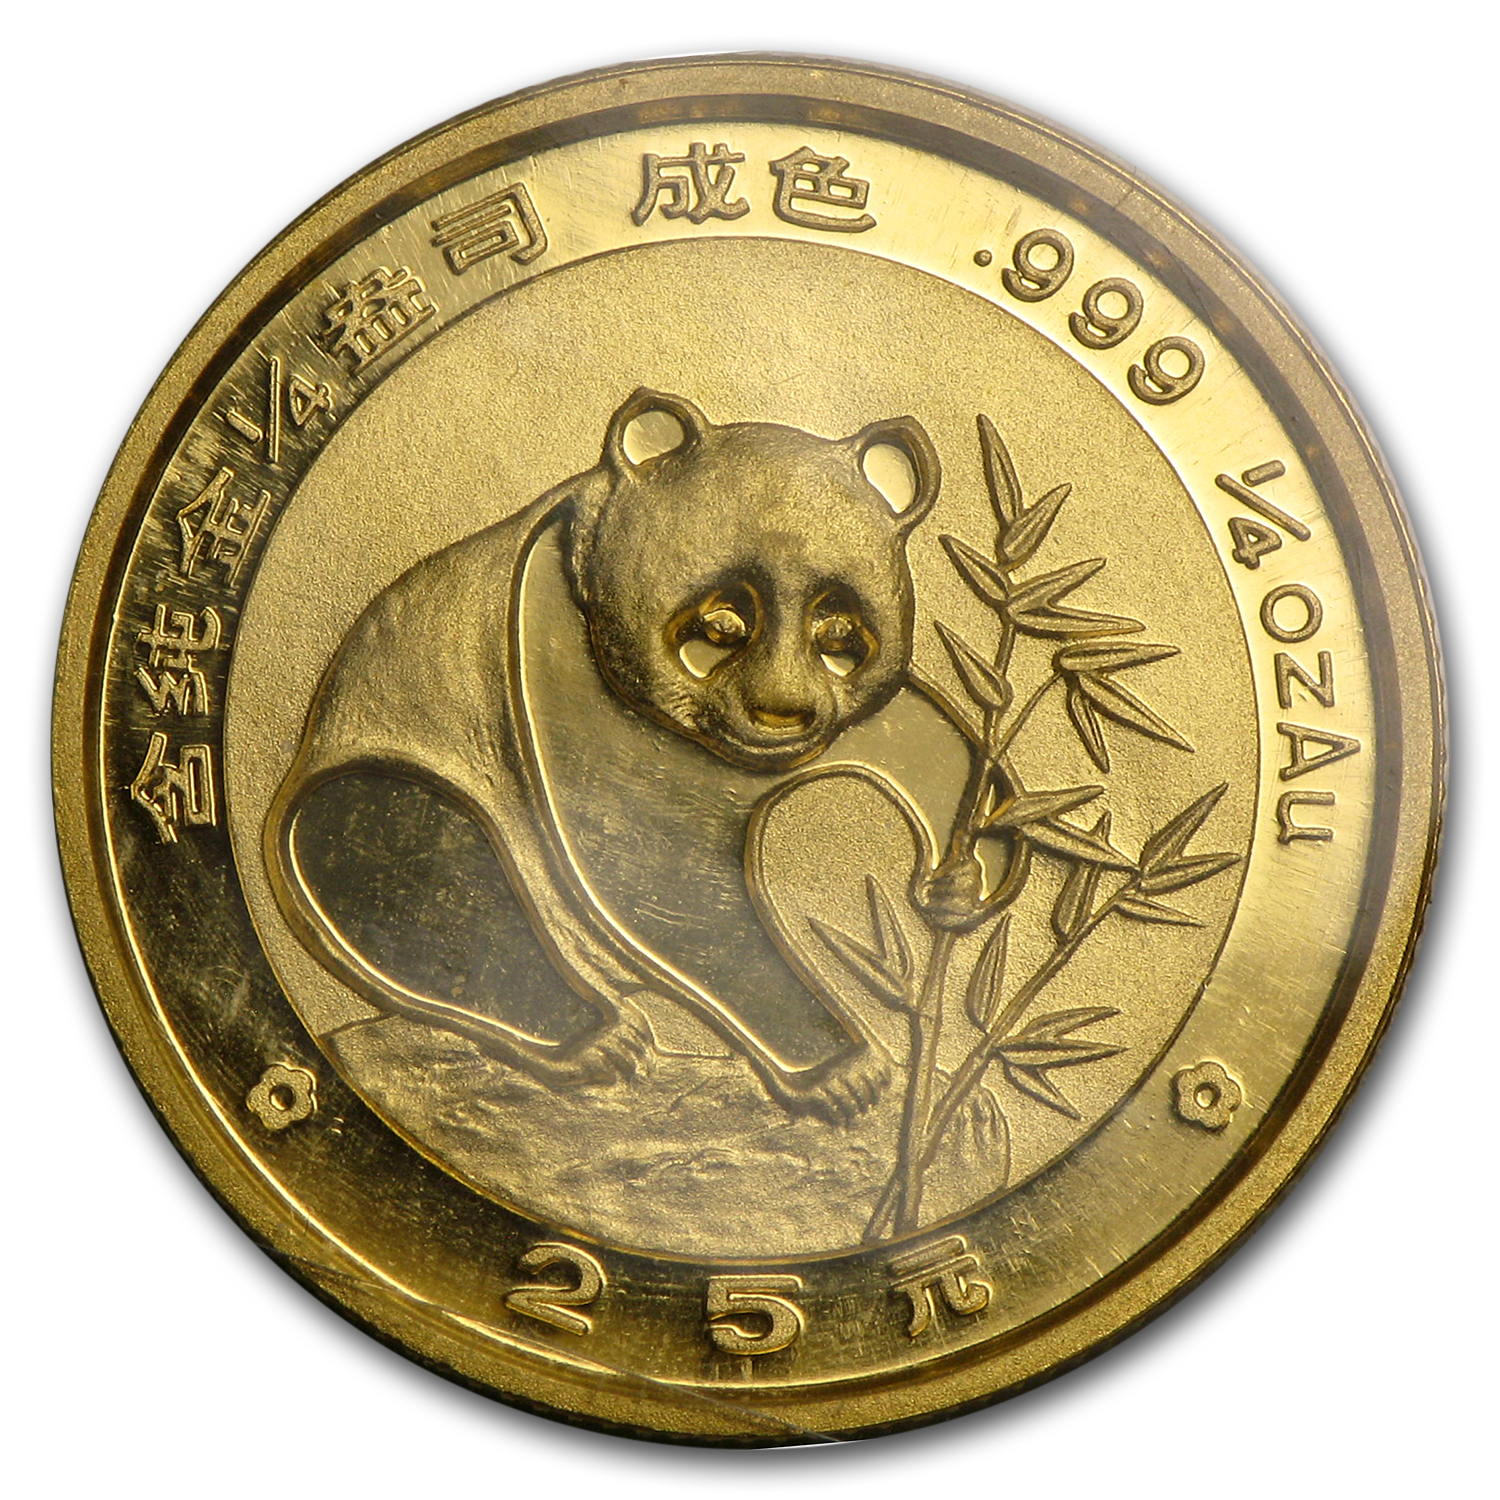 1988 China 1/4 oz Gold Panda BU (Sealed)